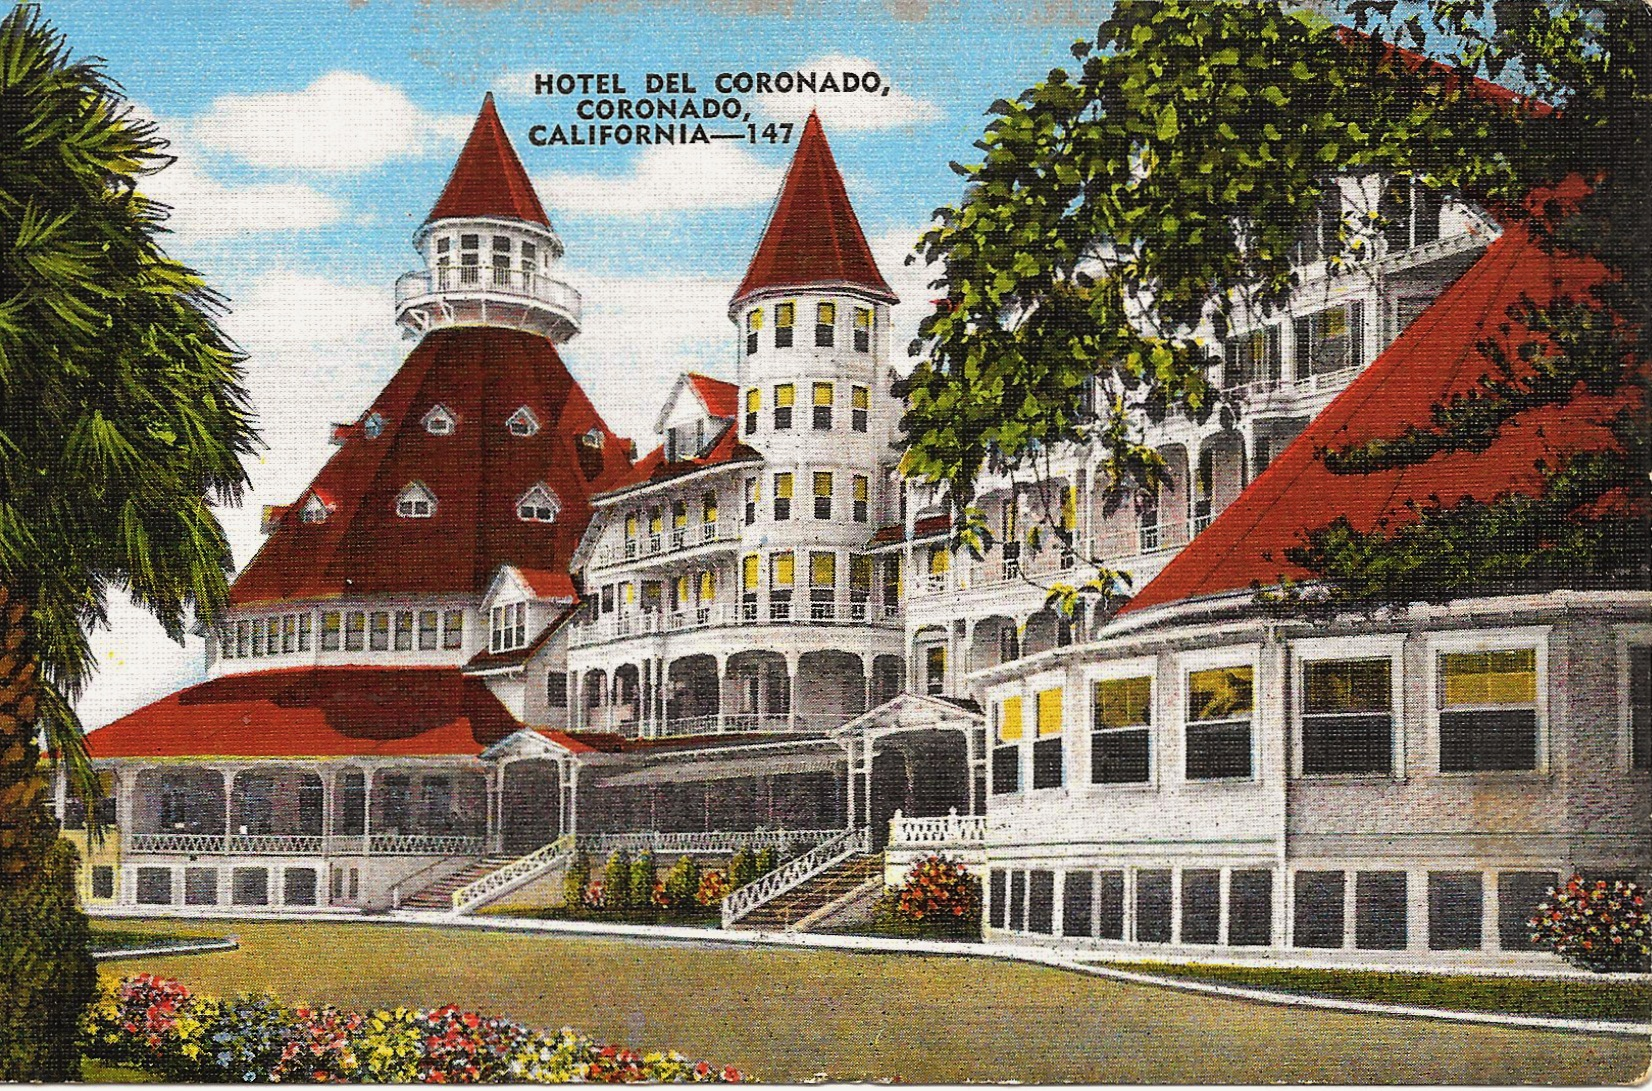 coronado hotel del postcard diego san hotels postcards thecavenderdiary cavender diary 1930 changed since she travel airport